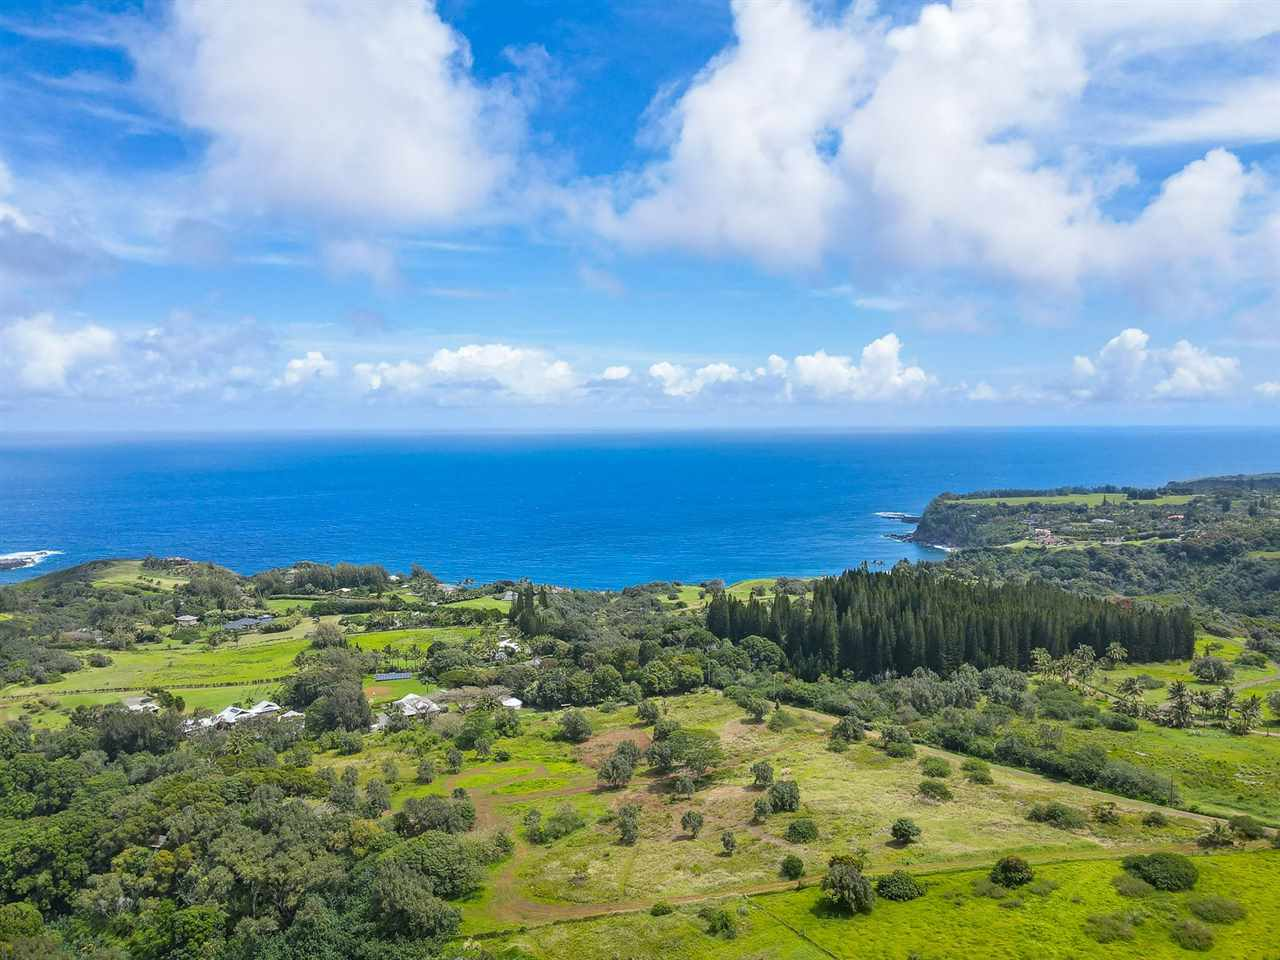 Manawai Pl Lot 3 Haiku, Hi 96708 vacant land - photo 19 of 19